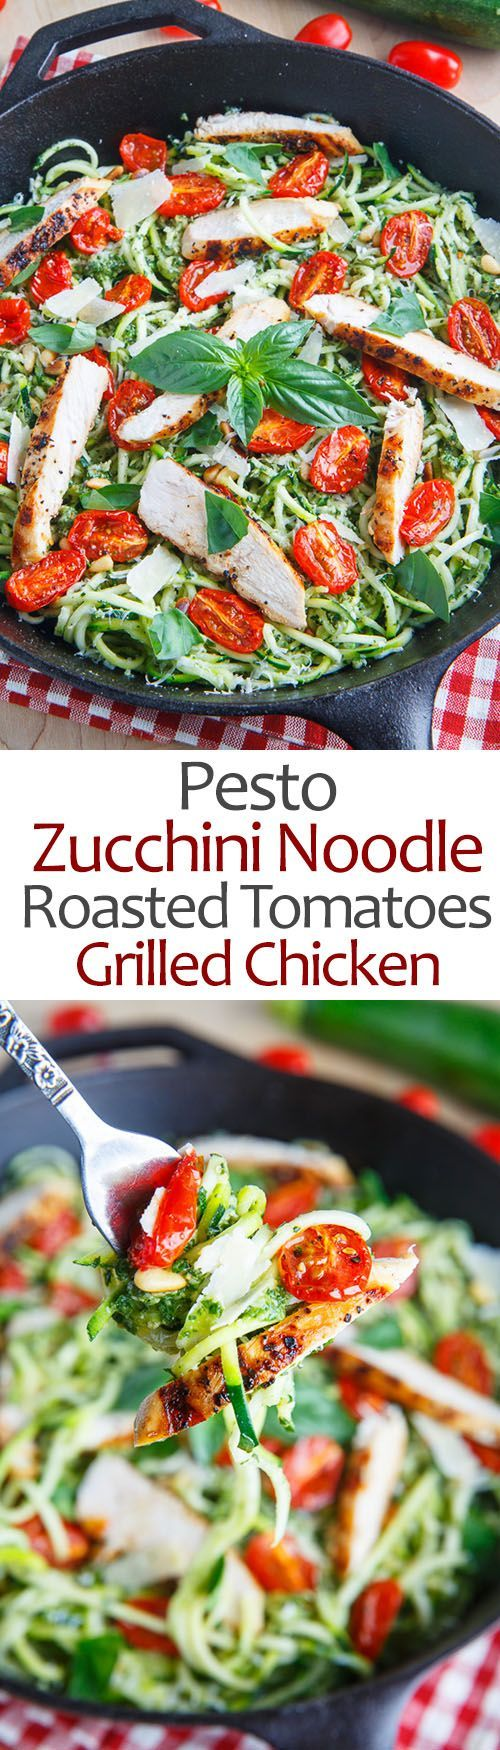 Pesto Zucchini Noodles with Roasted Tomatoes and Grilled Chicken. I love the fresh ingredients in this. I always make a large batch of pesto and freeze it for dishes like this....delicious! www.capecodrelo.com